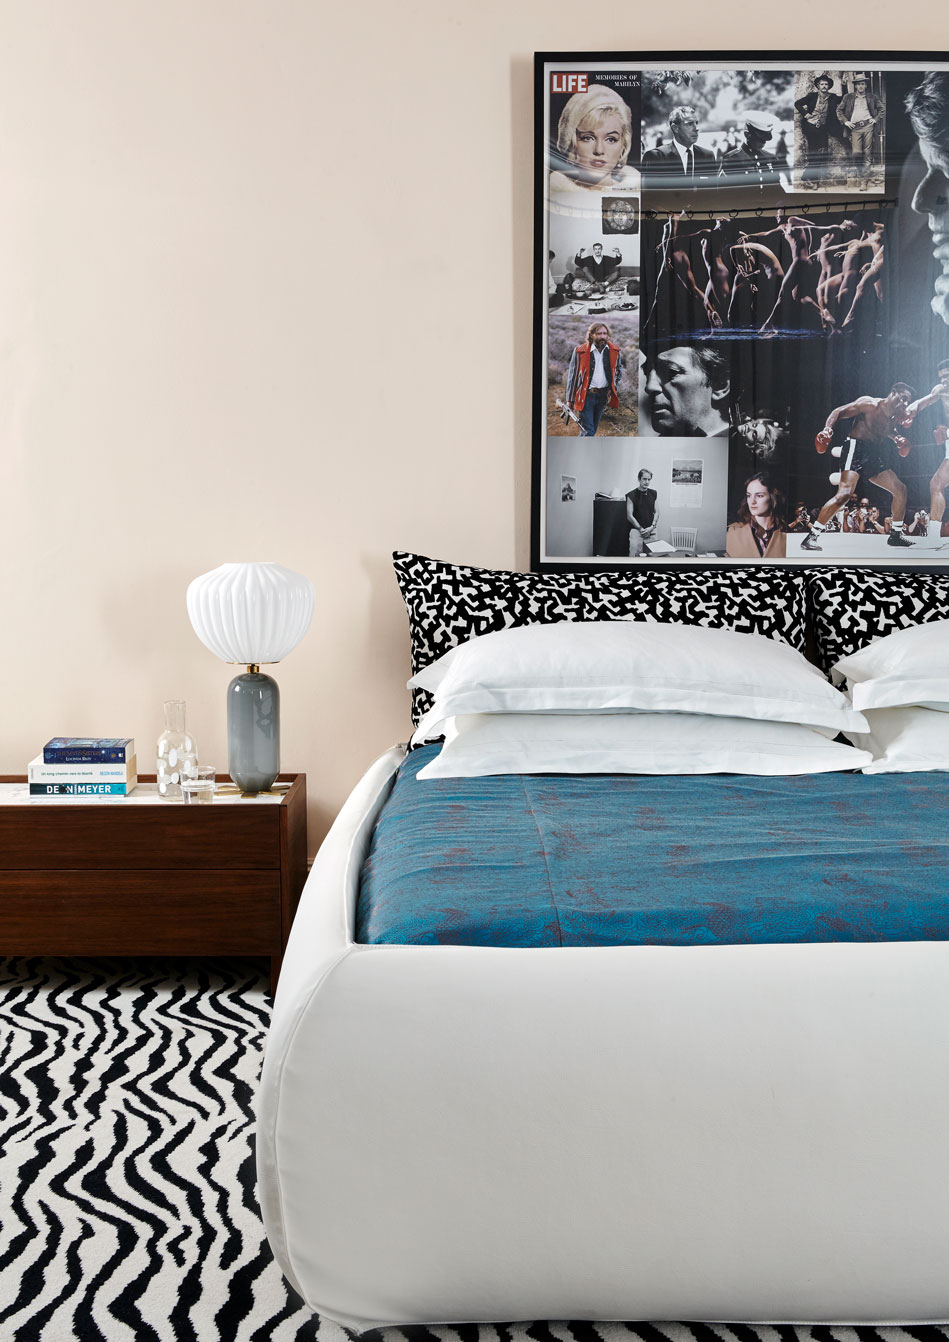 The bed was bought at Italian brand Baxter and the Life picture in New York. The 'don Giovanni' lamp is by India Mahdavi and the iridescent dragon fabric silk bed cover by Jean Paul Gaultier.